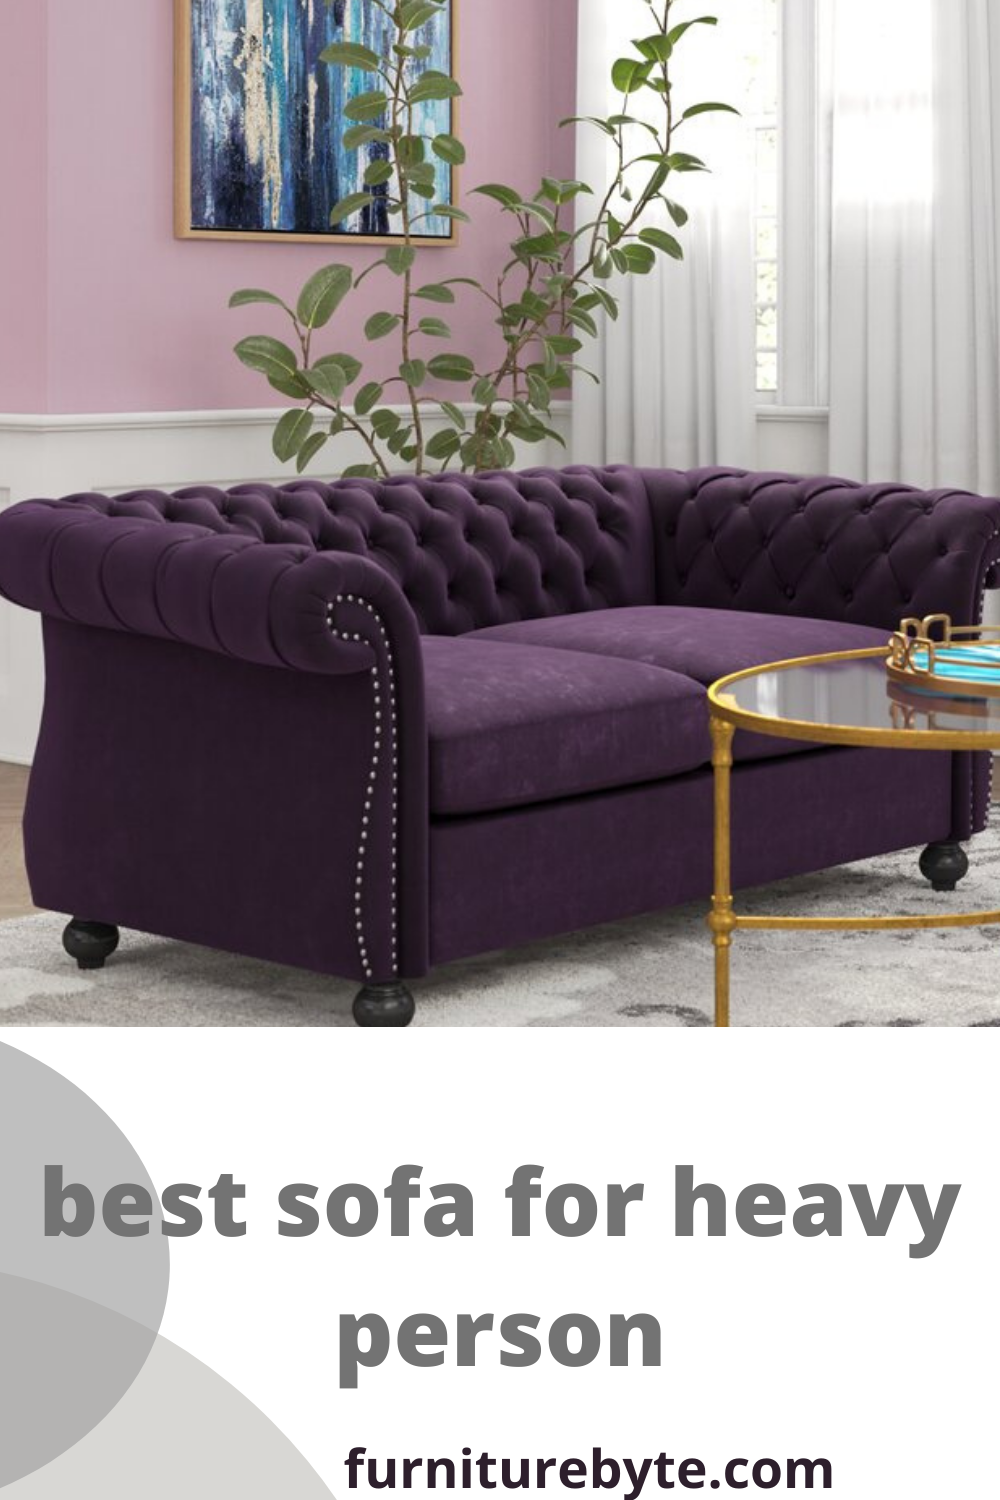 The Best Sofa For A Heavy Person. In 2020 | Best Sofa, Sofa, Sofa Review